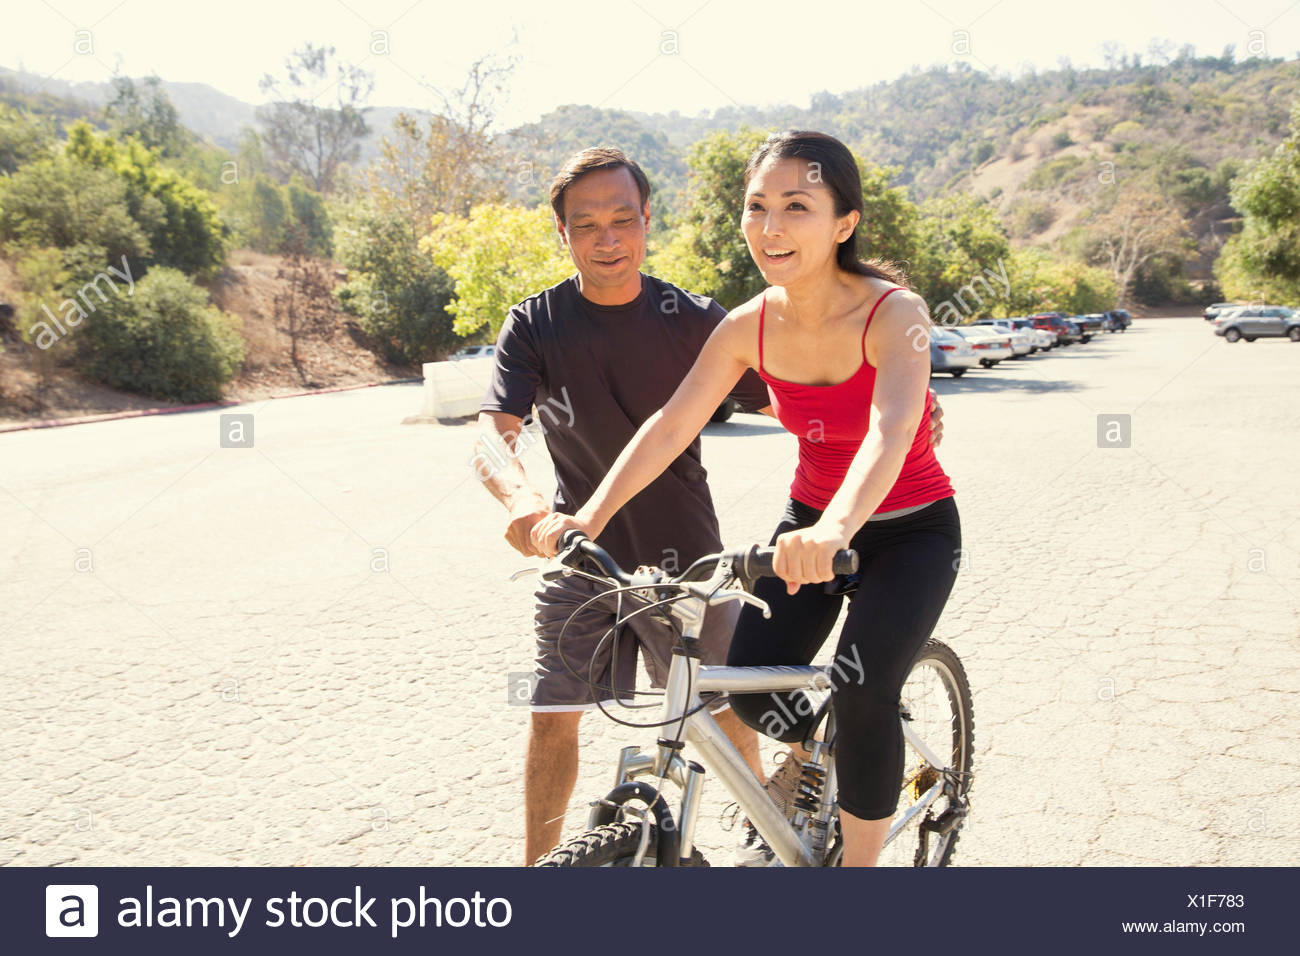 Mature woman learning to ride bicycle in park - Stock Image